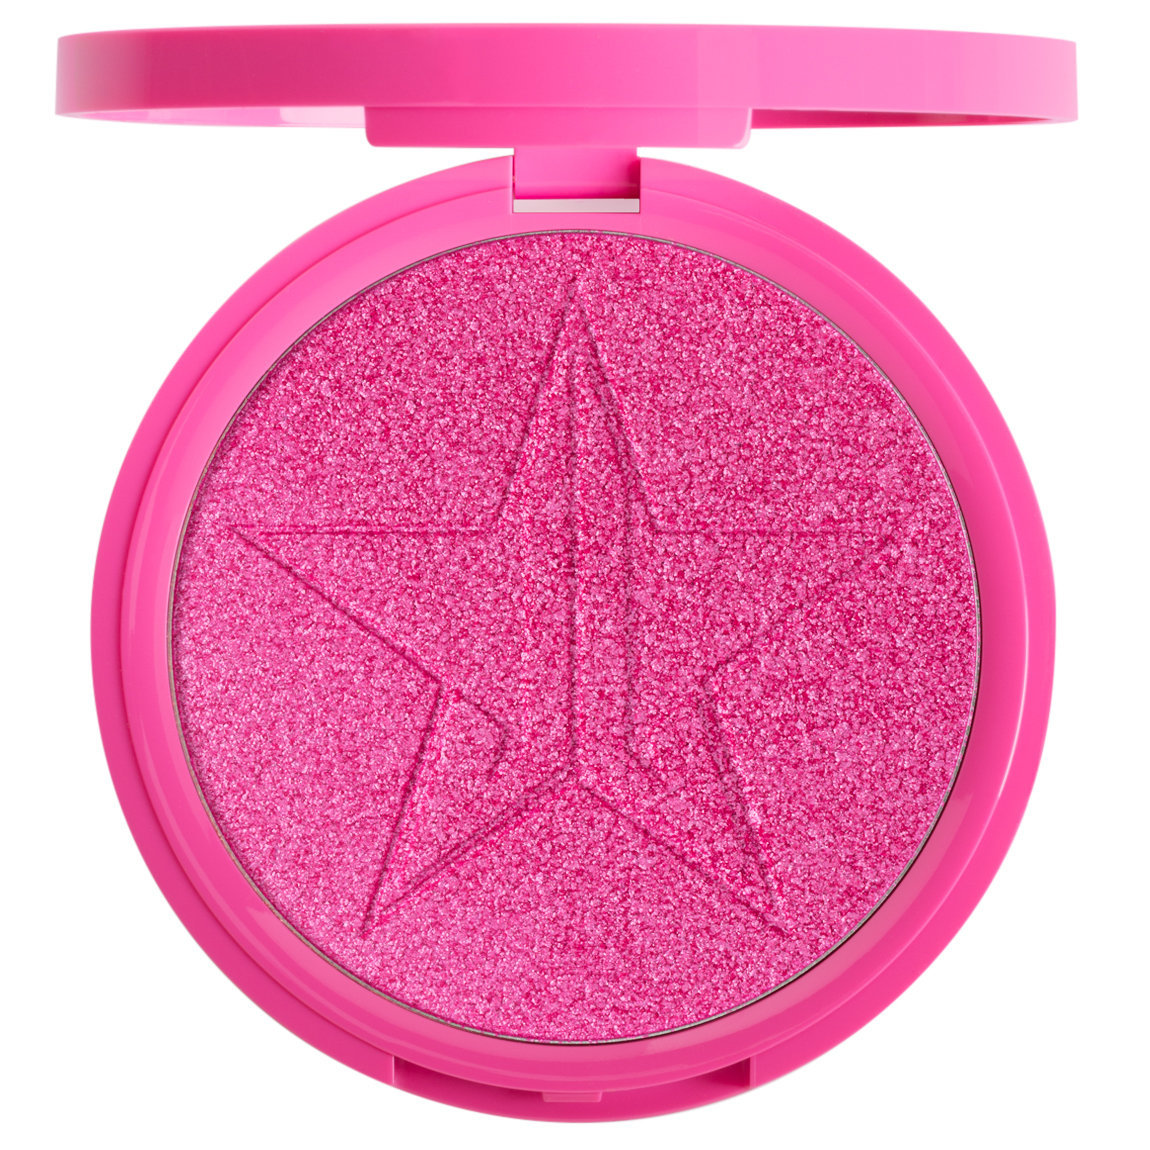 Jeffree Star Cosmetics Skin Frost Regina George